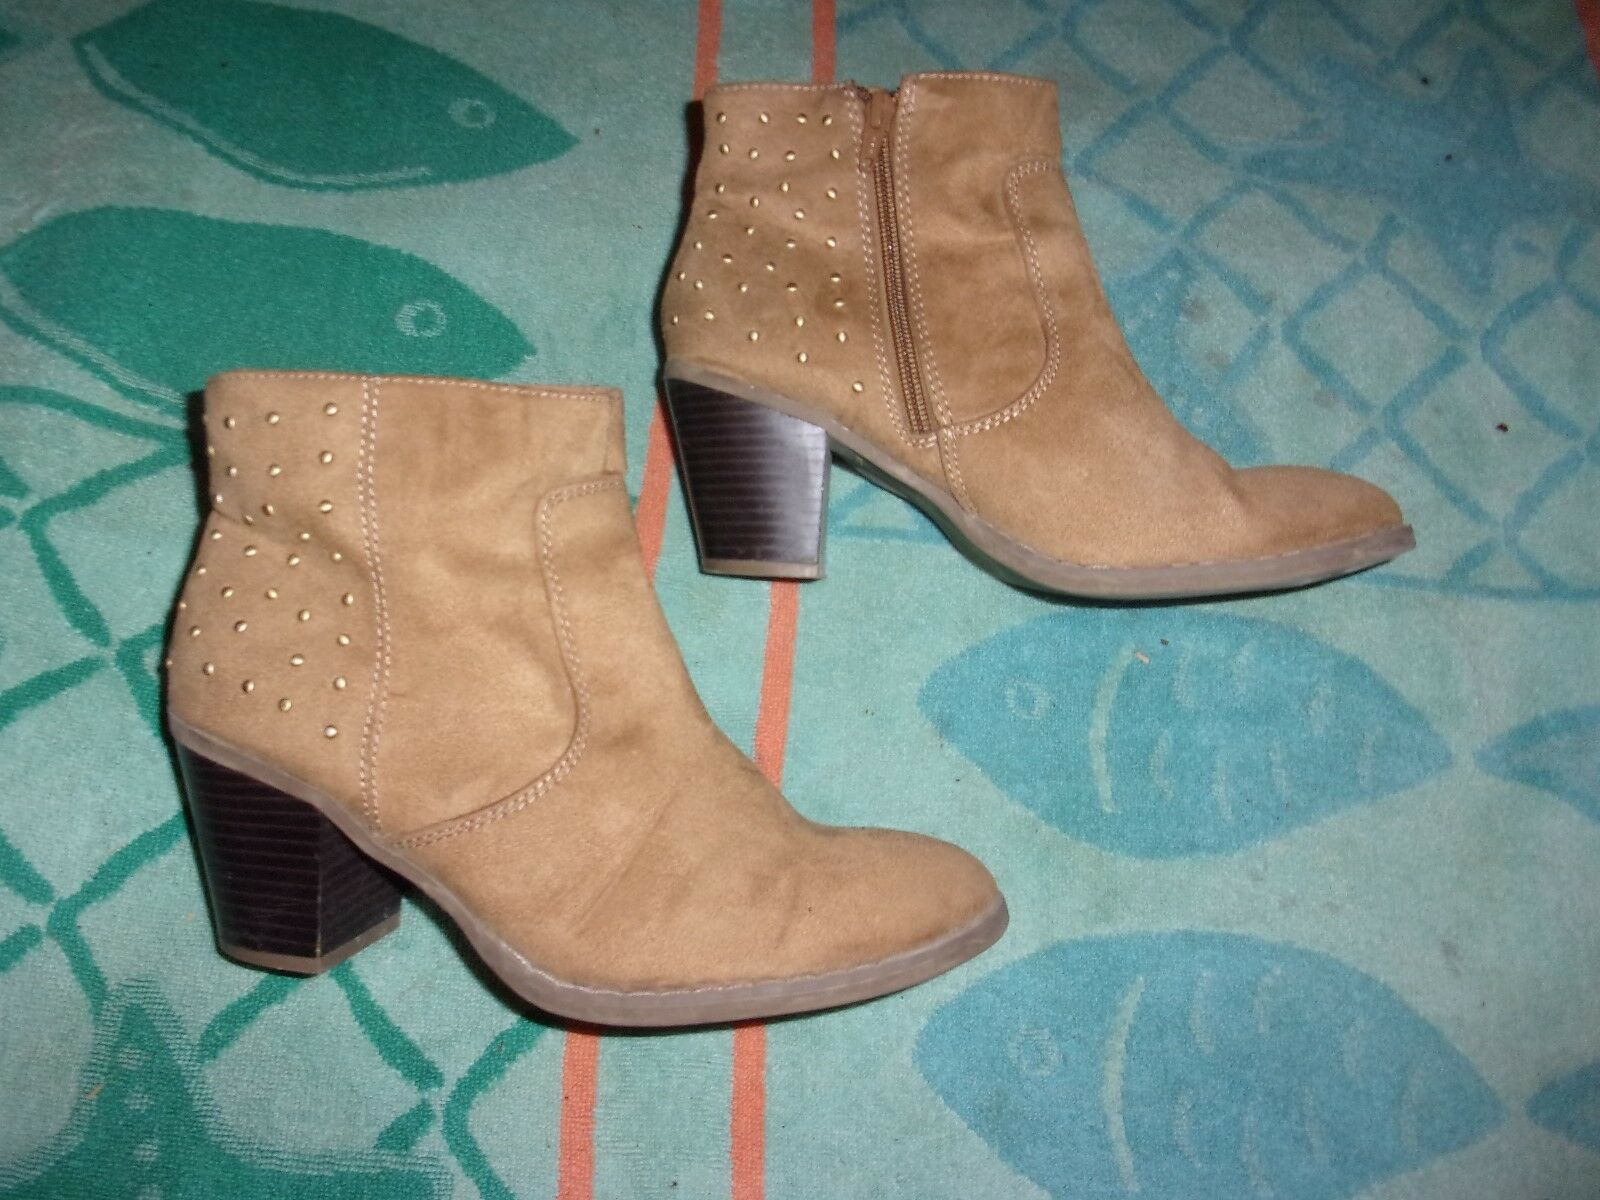 Old Navy SIZE ZIPPER BOOTS WOMENS SIZE Navy 9 290226